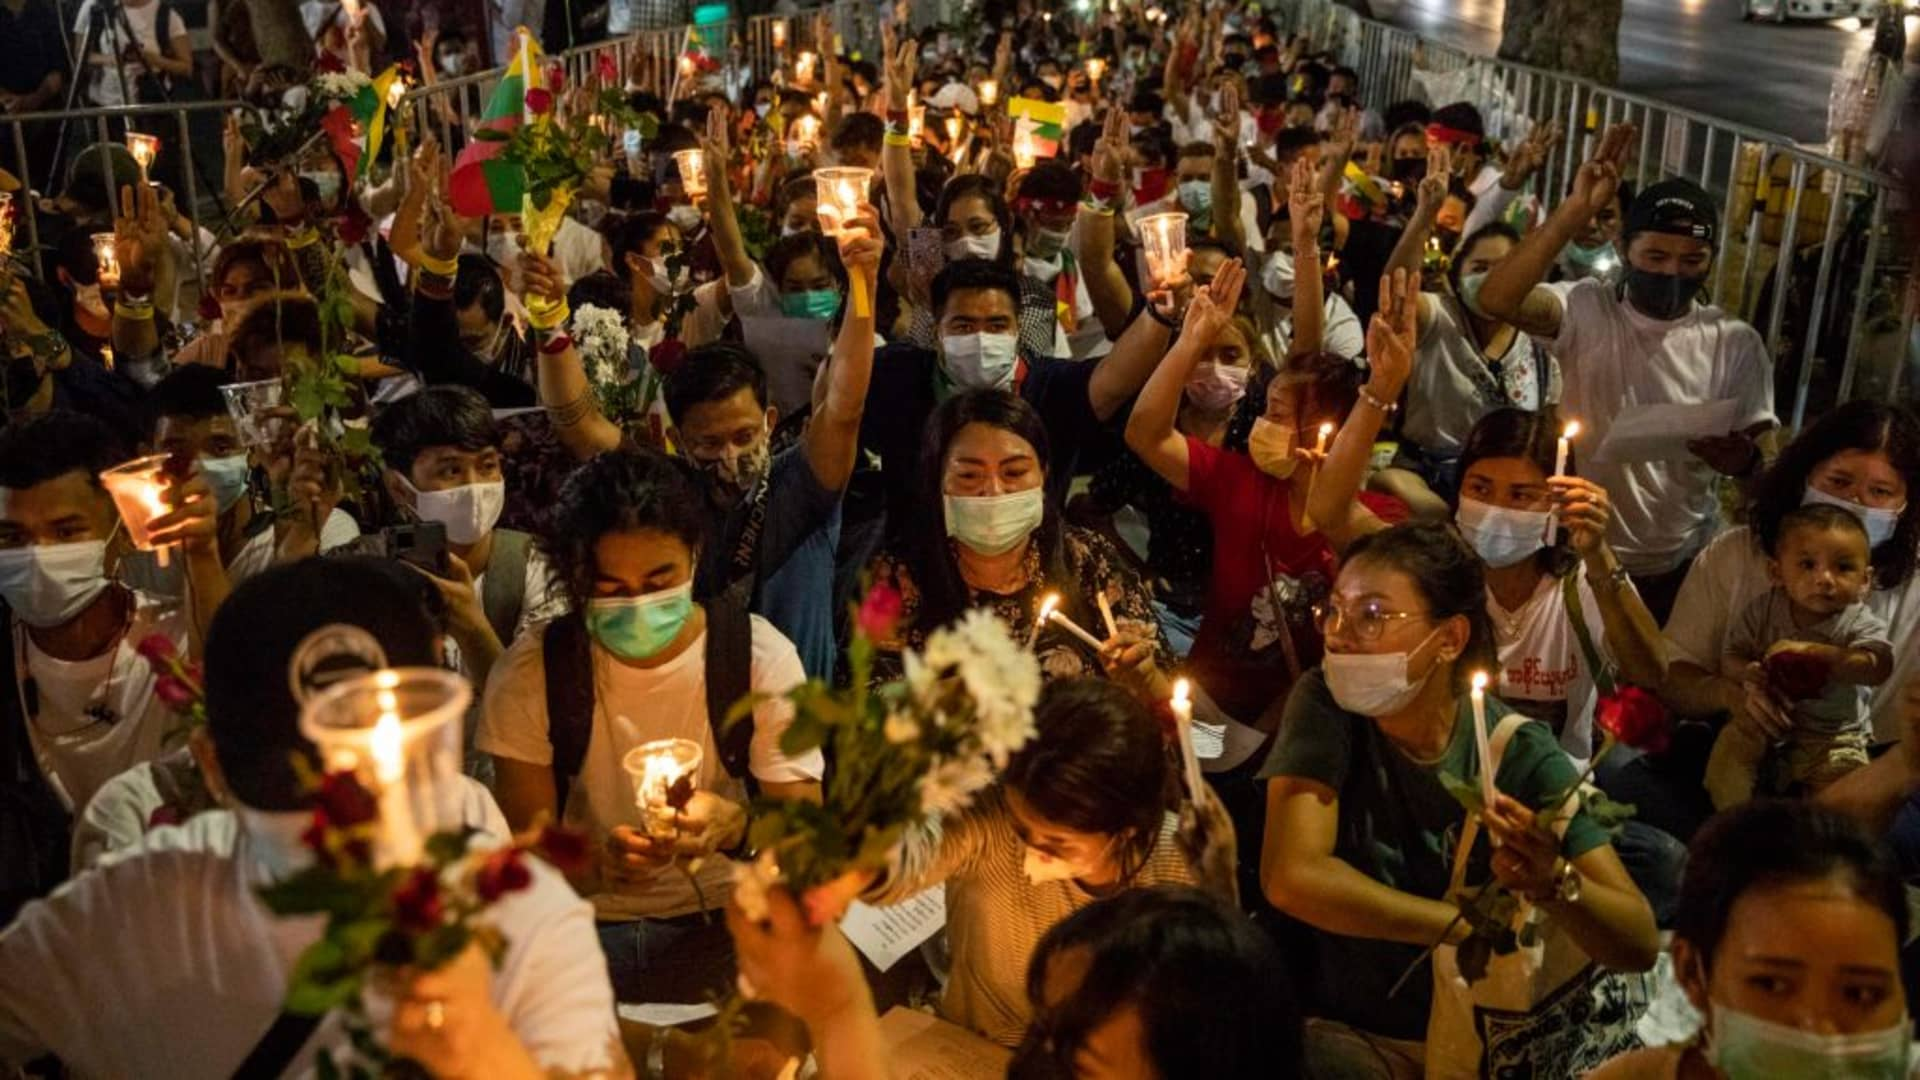 Myanmar nationals hold a candlelight vigil outside of the United Nations in remembrance of anti-coup protesters who have been killed in Myanmar on March 04, 2021 in Bangkok, Thailand.